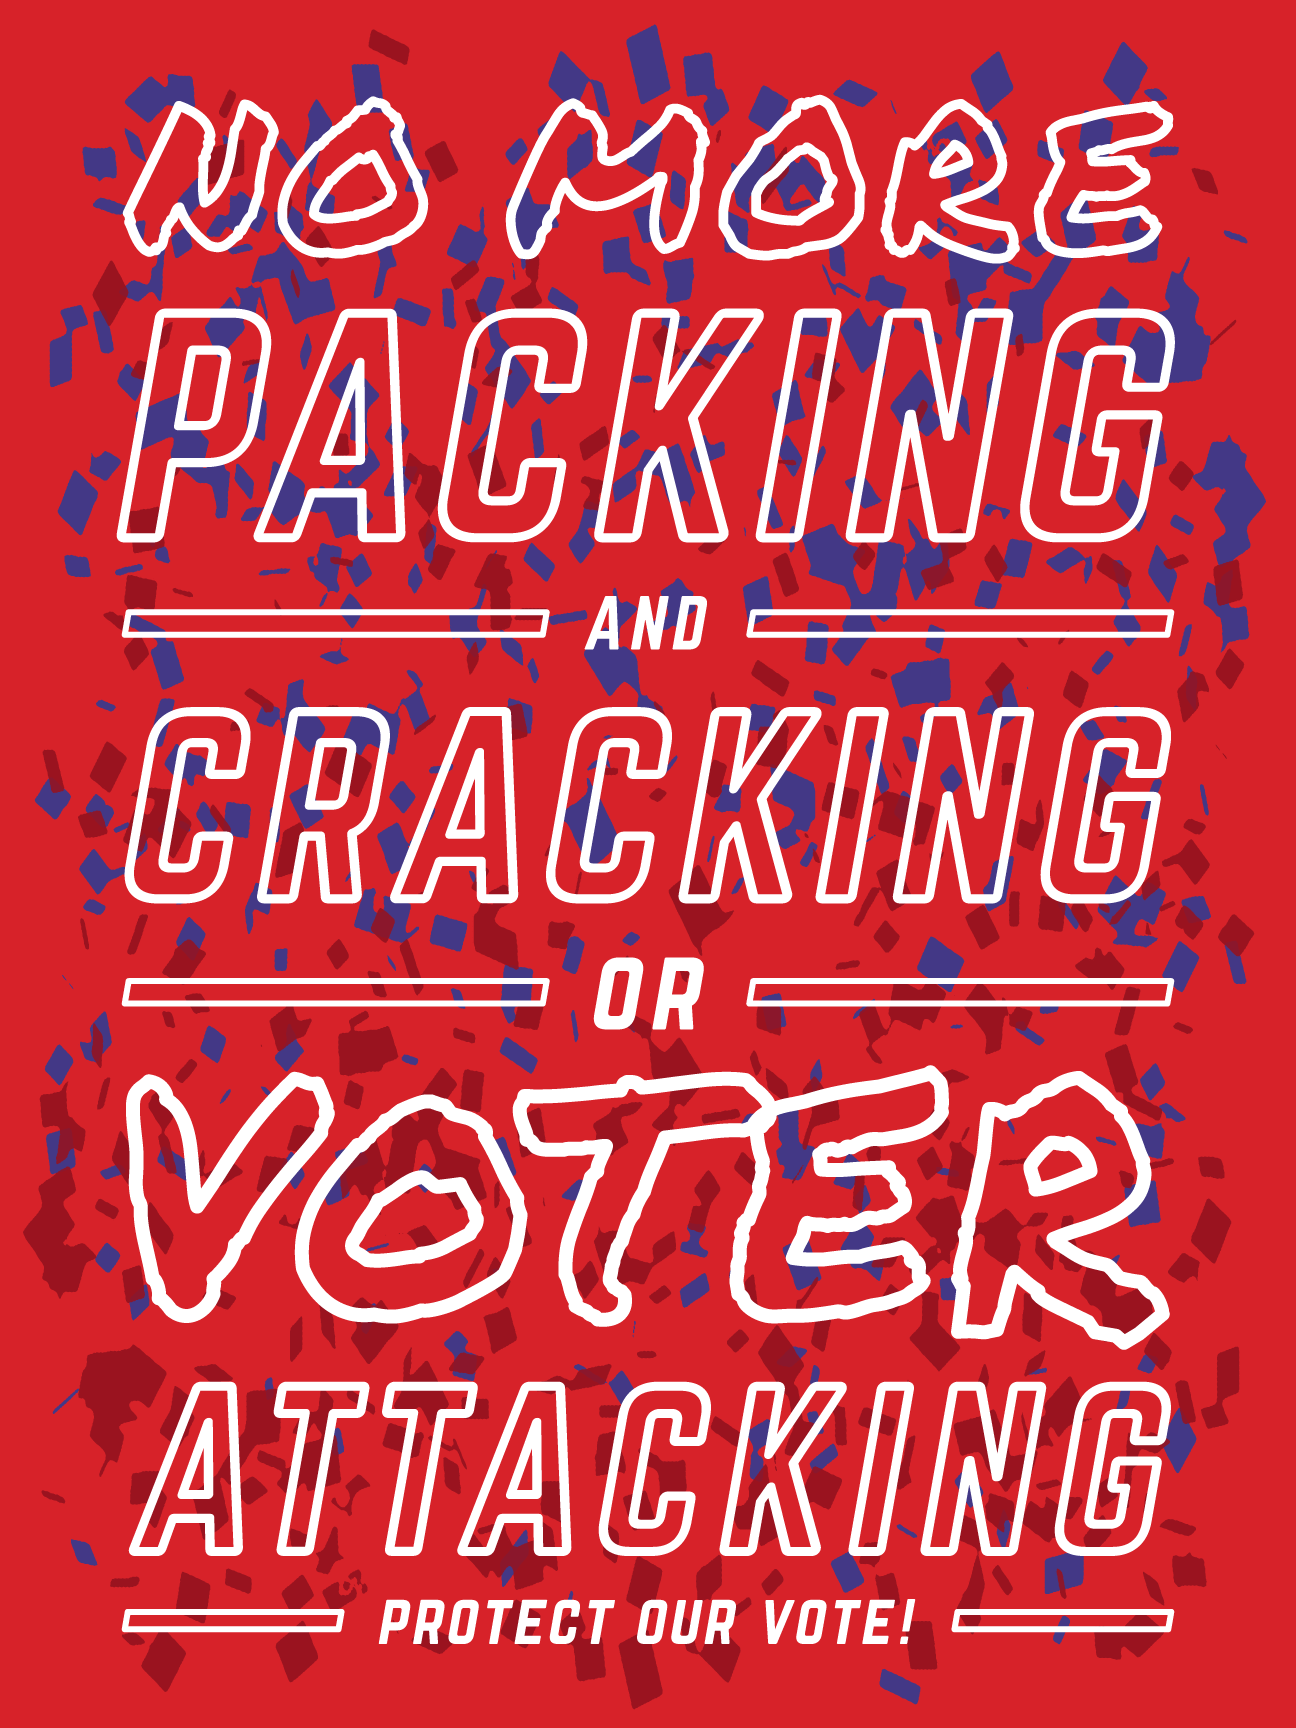 Packing & Cracking by Justin Kemerling